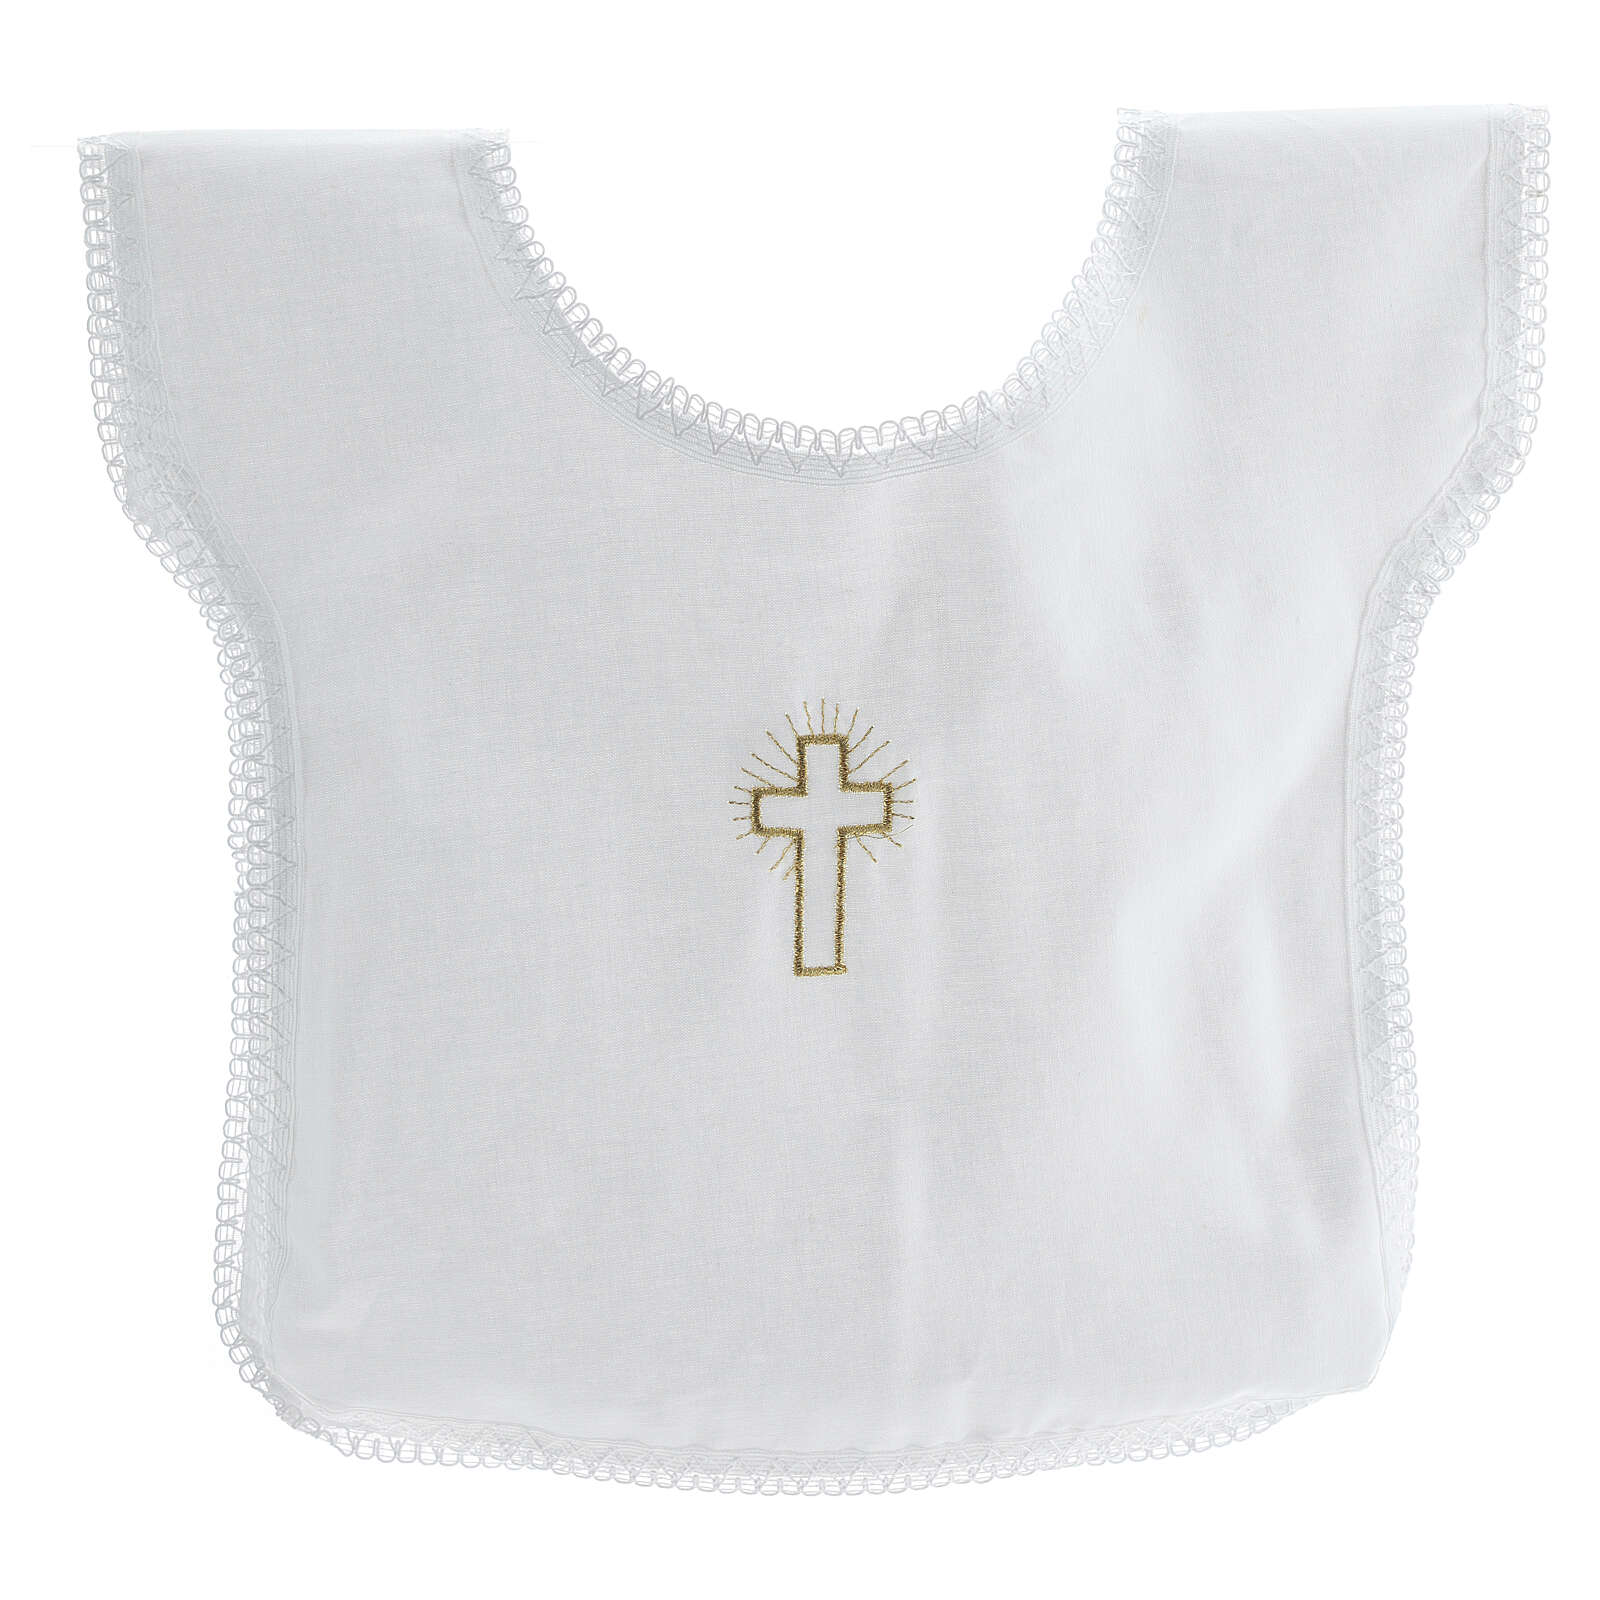 Baptismal gown 100% cotton with cross embroidery 4